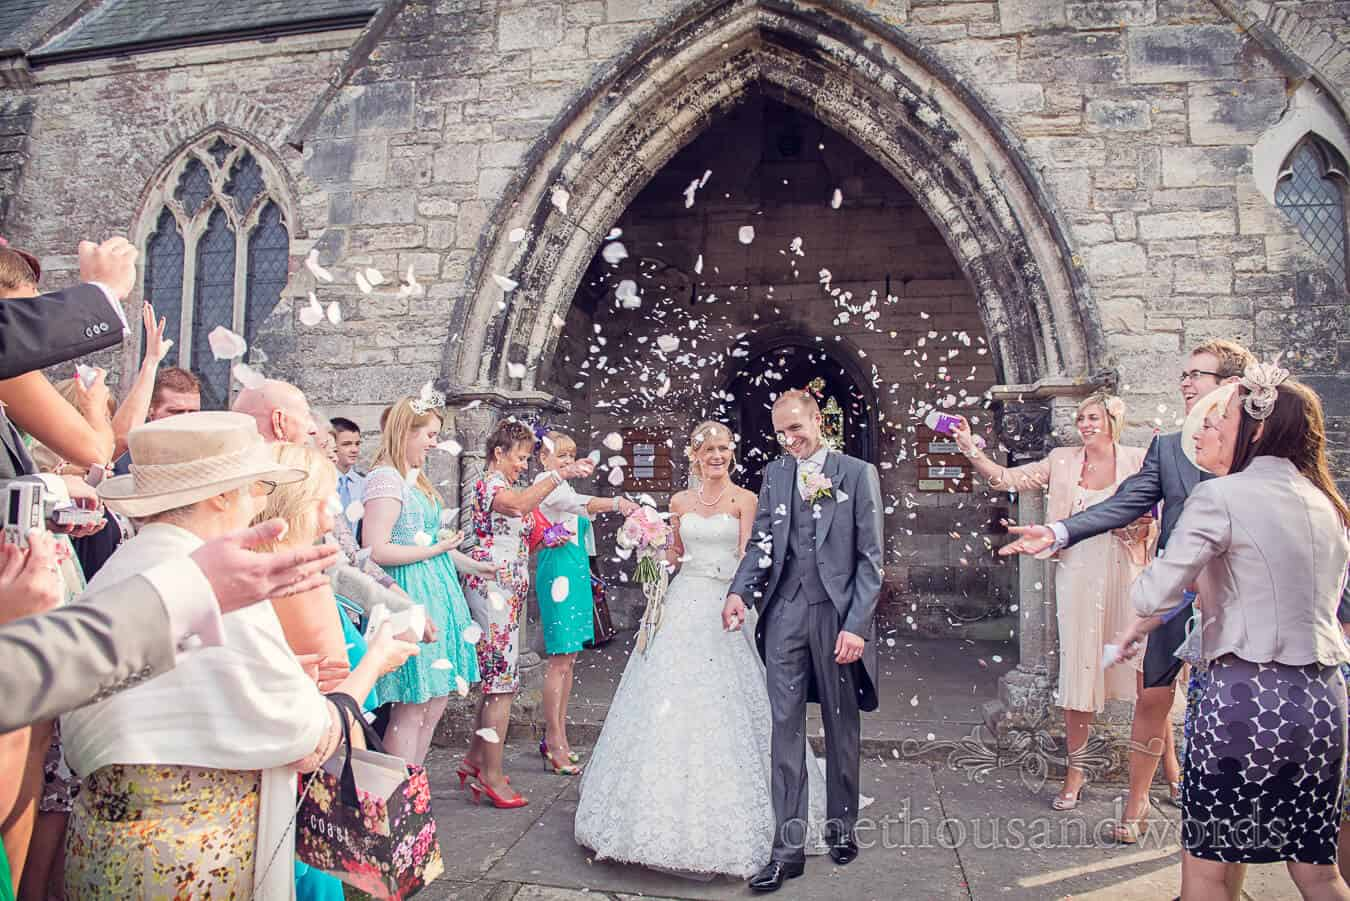 Wedding confetti outside Dorset stone church in Corfe Castle